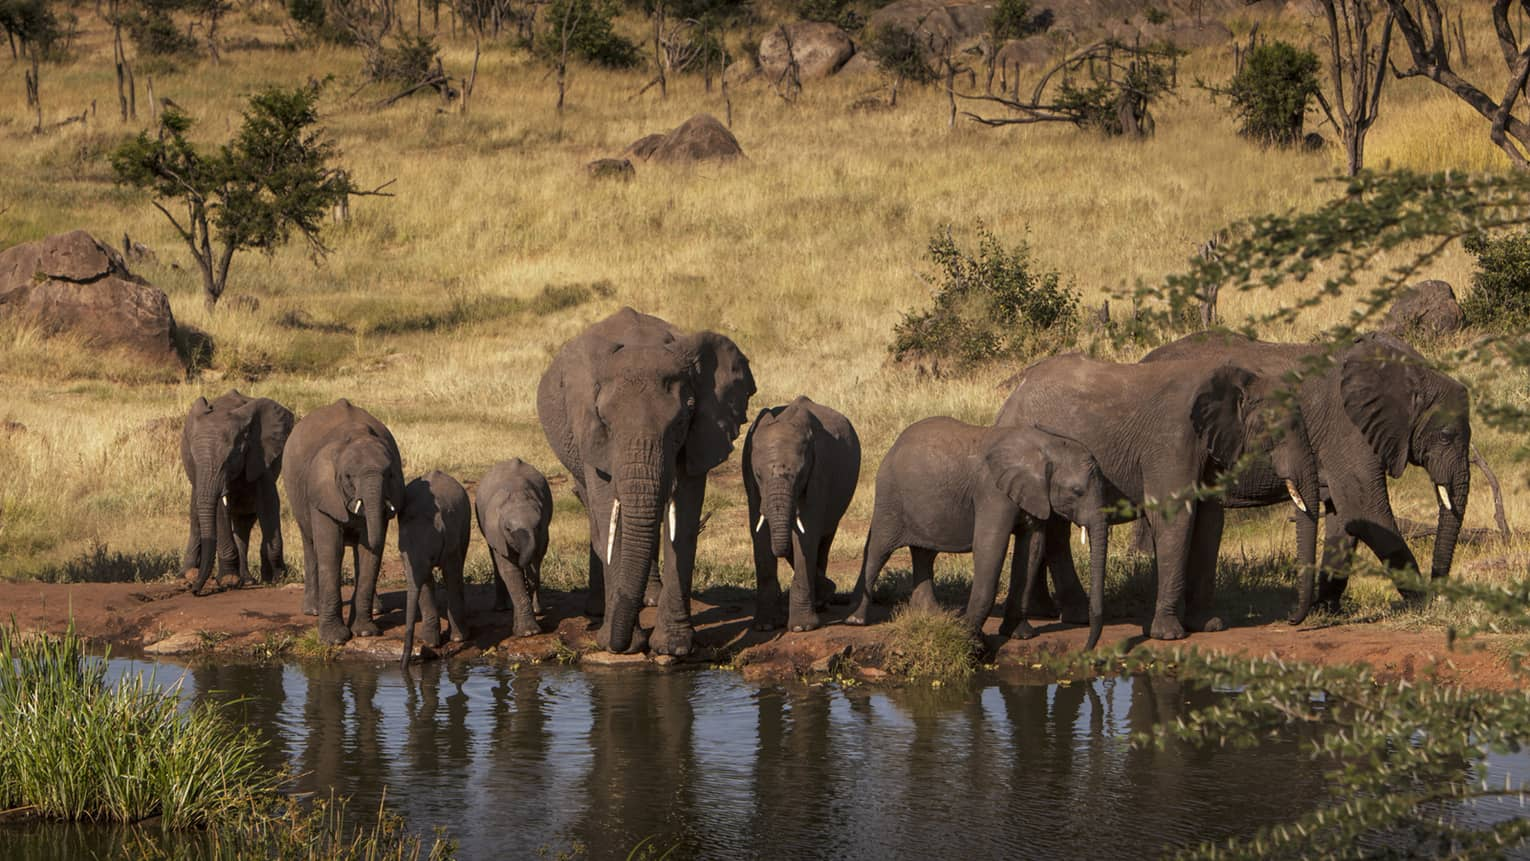 A pack of elephants drinking from a watering hole